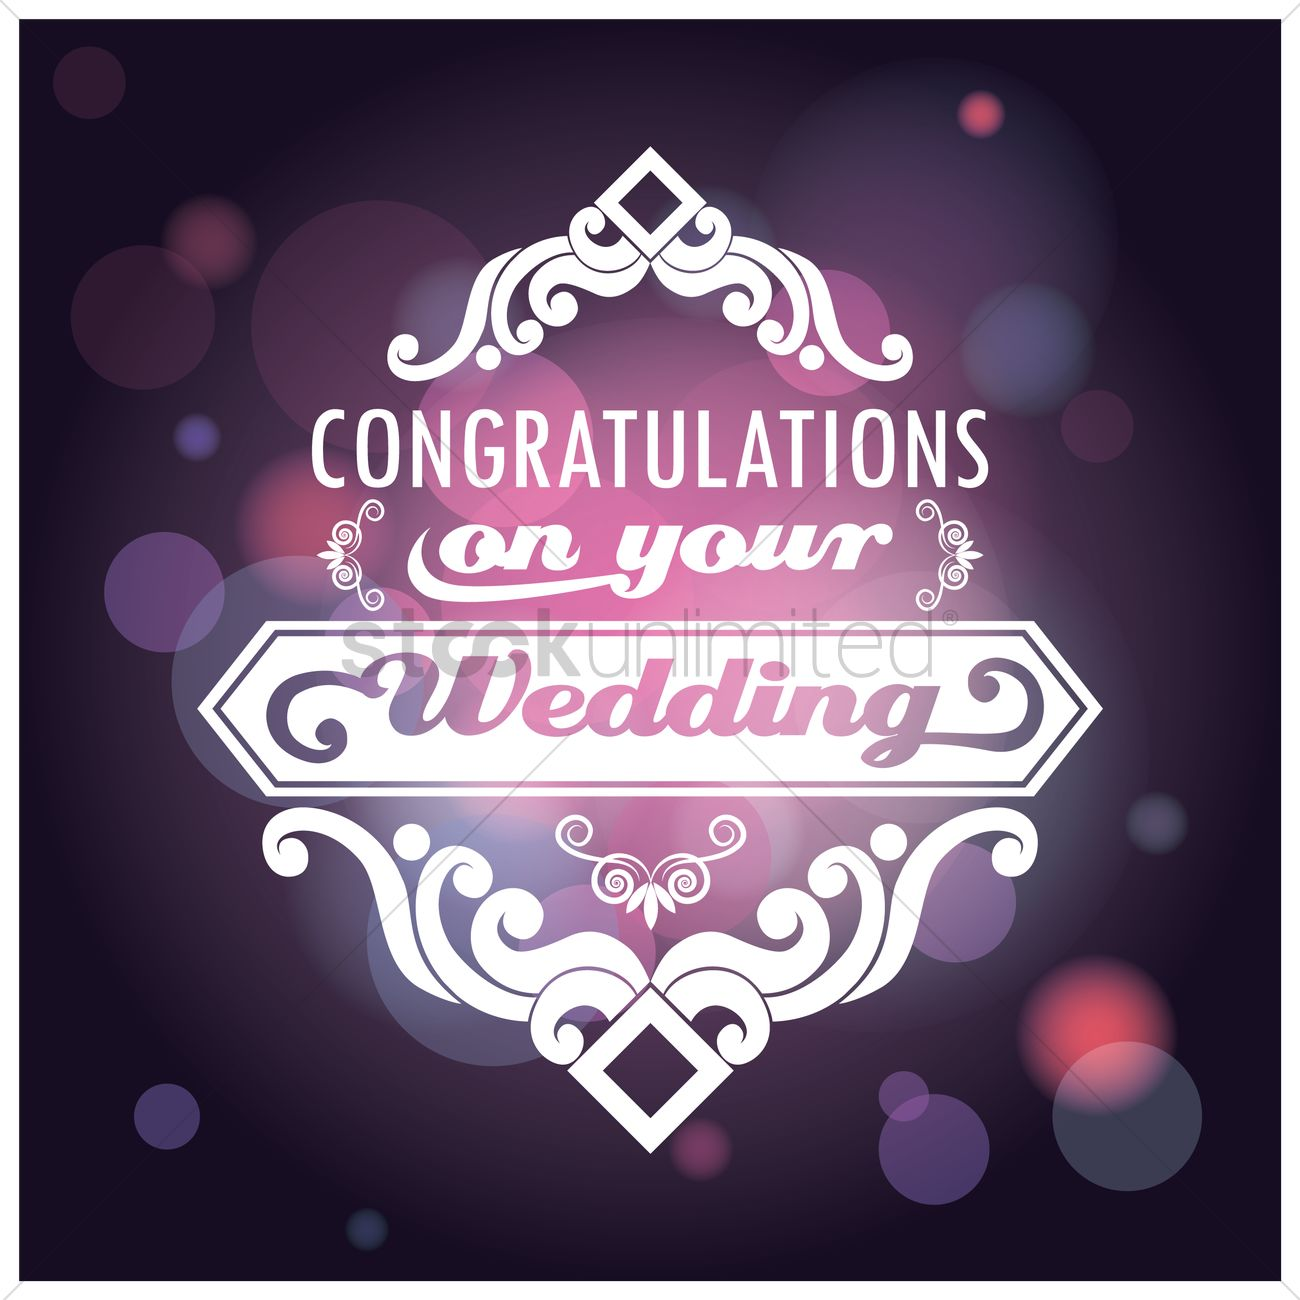 Congrats On Your Wedding: Congratulations On Your Wedding Card Vector Image